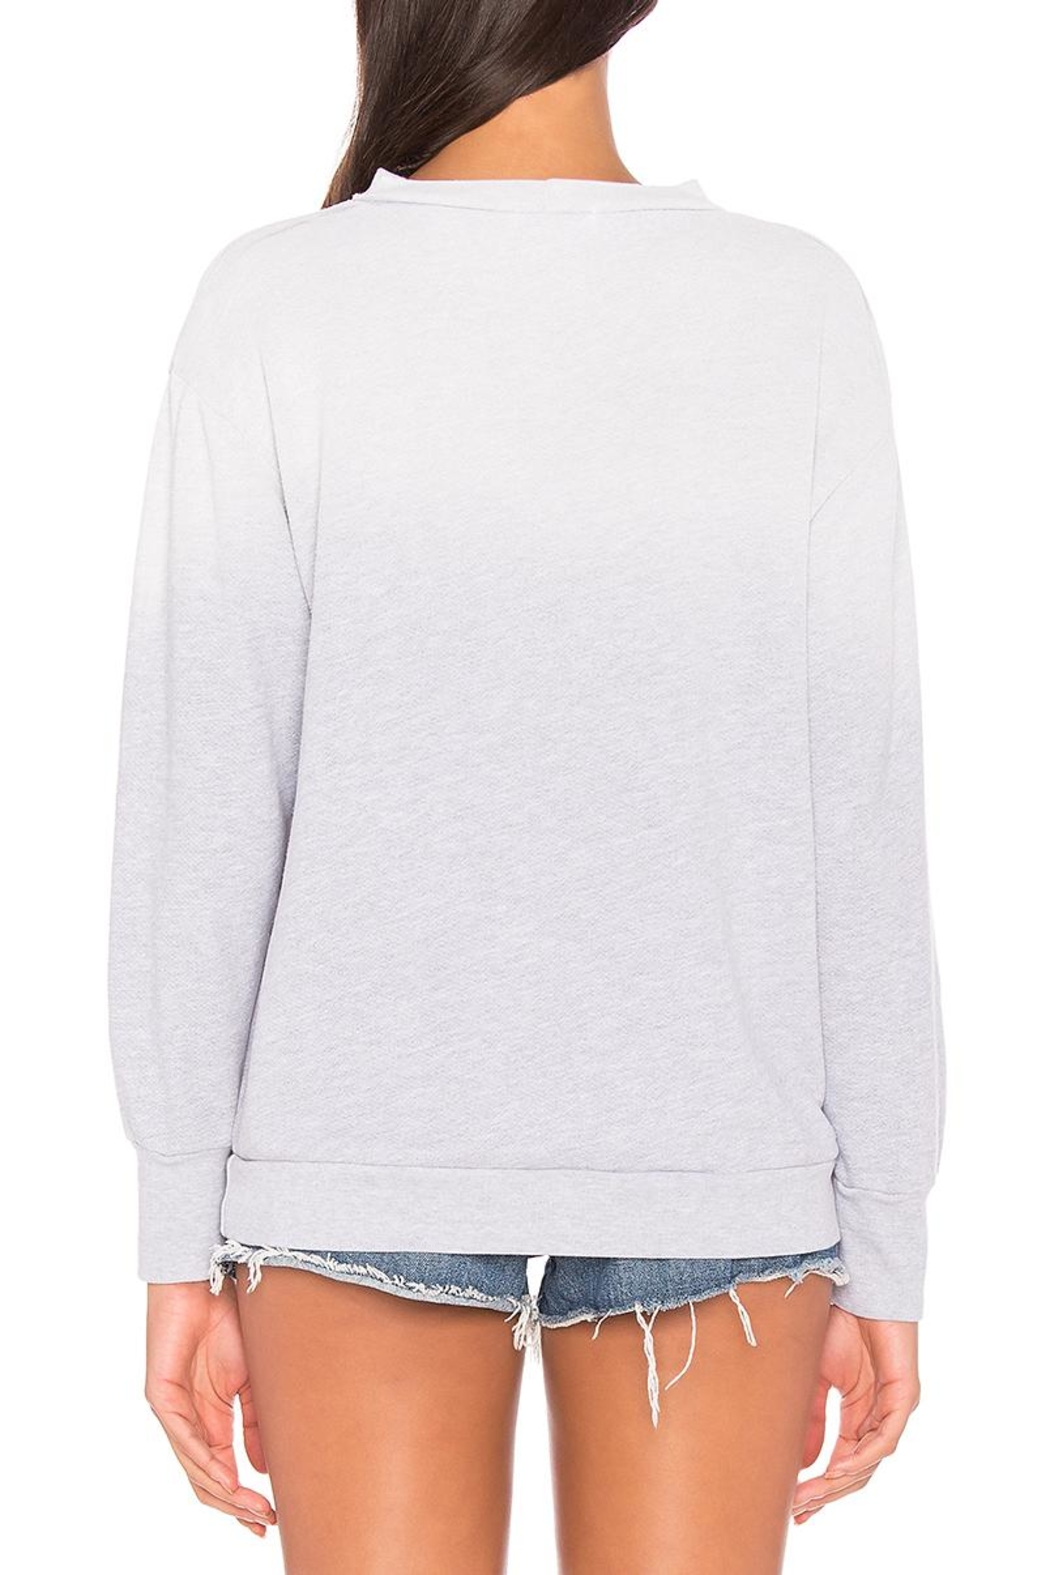 LNA Ablaze Sweatshirt - Side Cropped Image